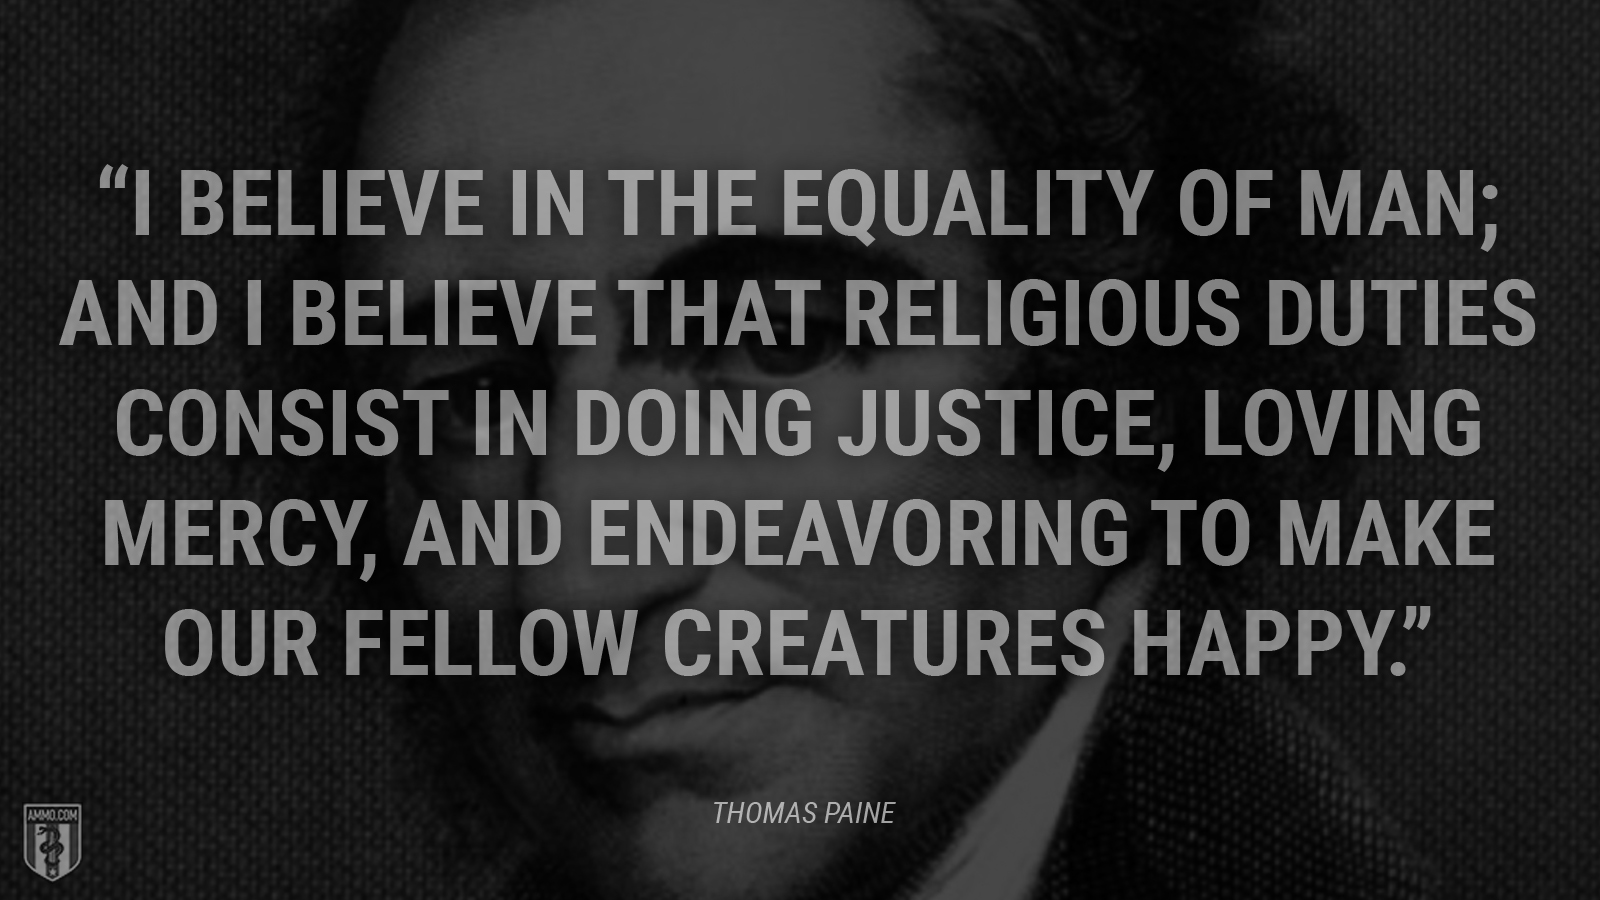 """""""I believe in the equality of man; and I believe that religious duties consist in doing justice, loving mercy, and endeavoring to make our fellow creatures happy."""" - Thomas Paine"""